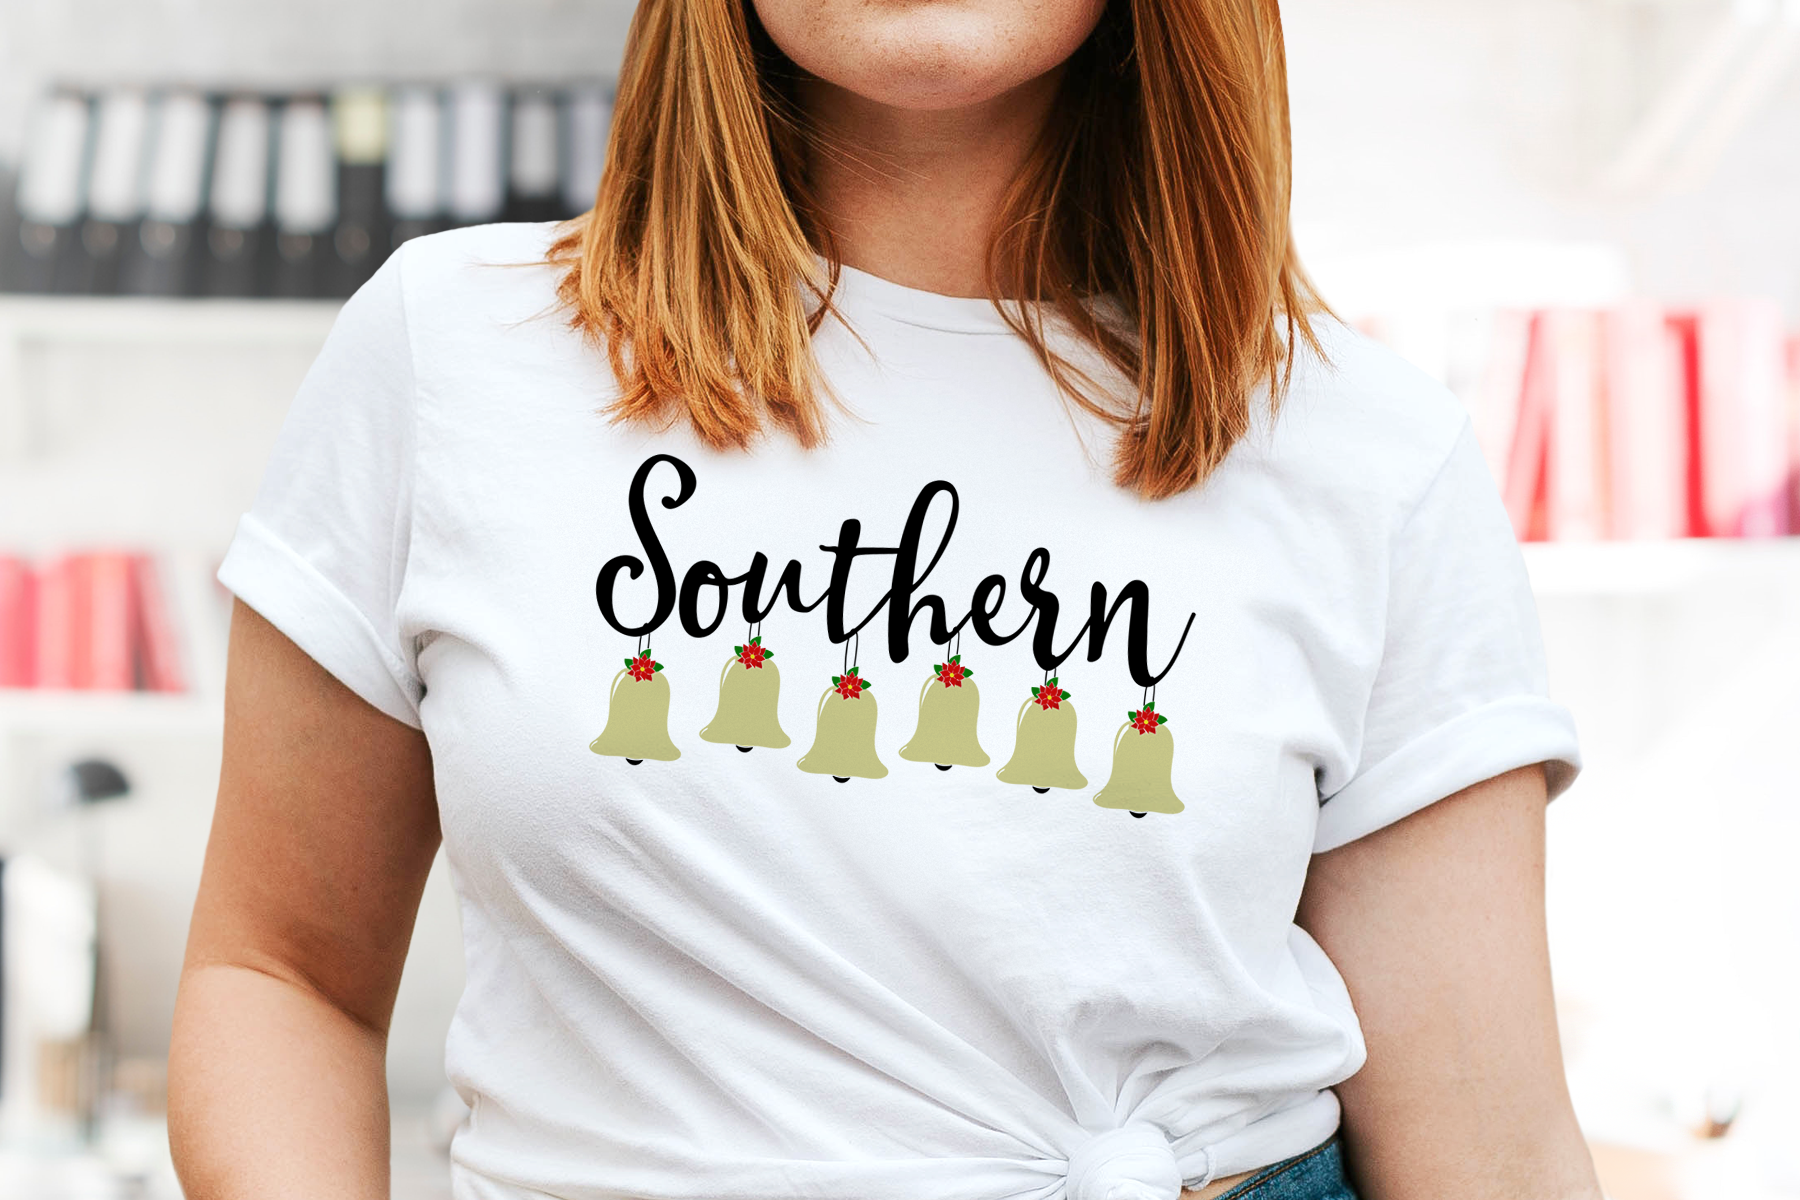 Southern Belles Christmas Style! Bridal Friends Cut / Print example image 2